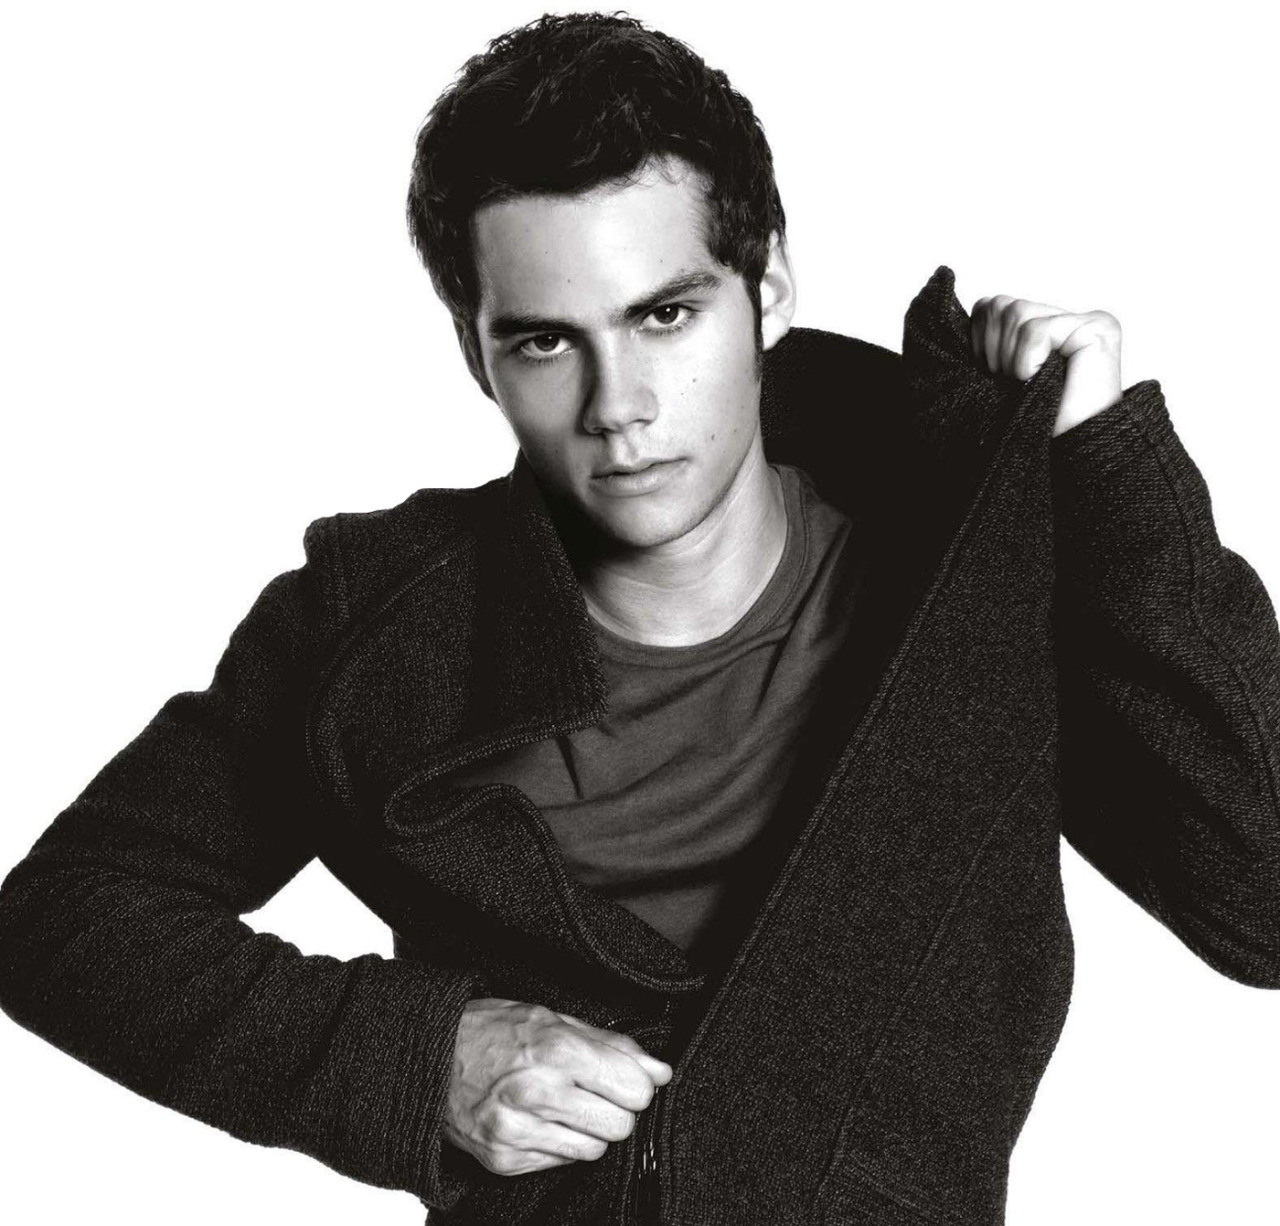 Dylan dylan o 39 brien photo 38588875 fanpop for The dylan